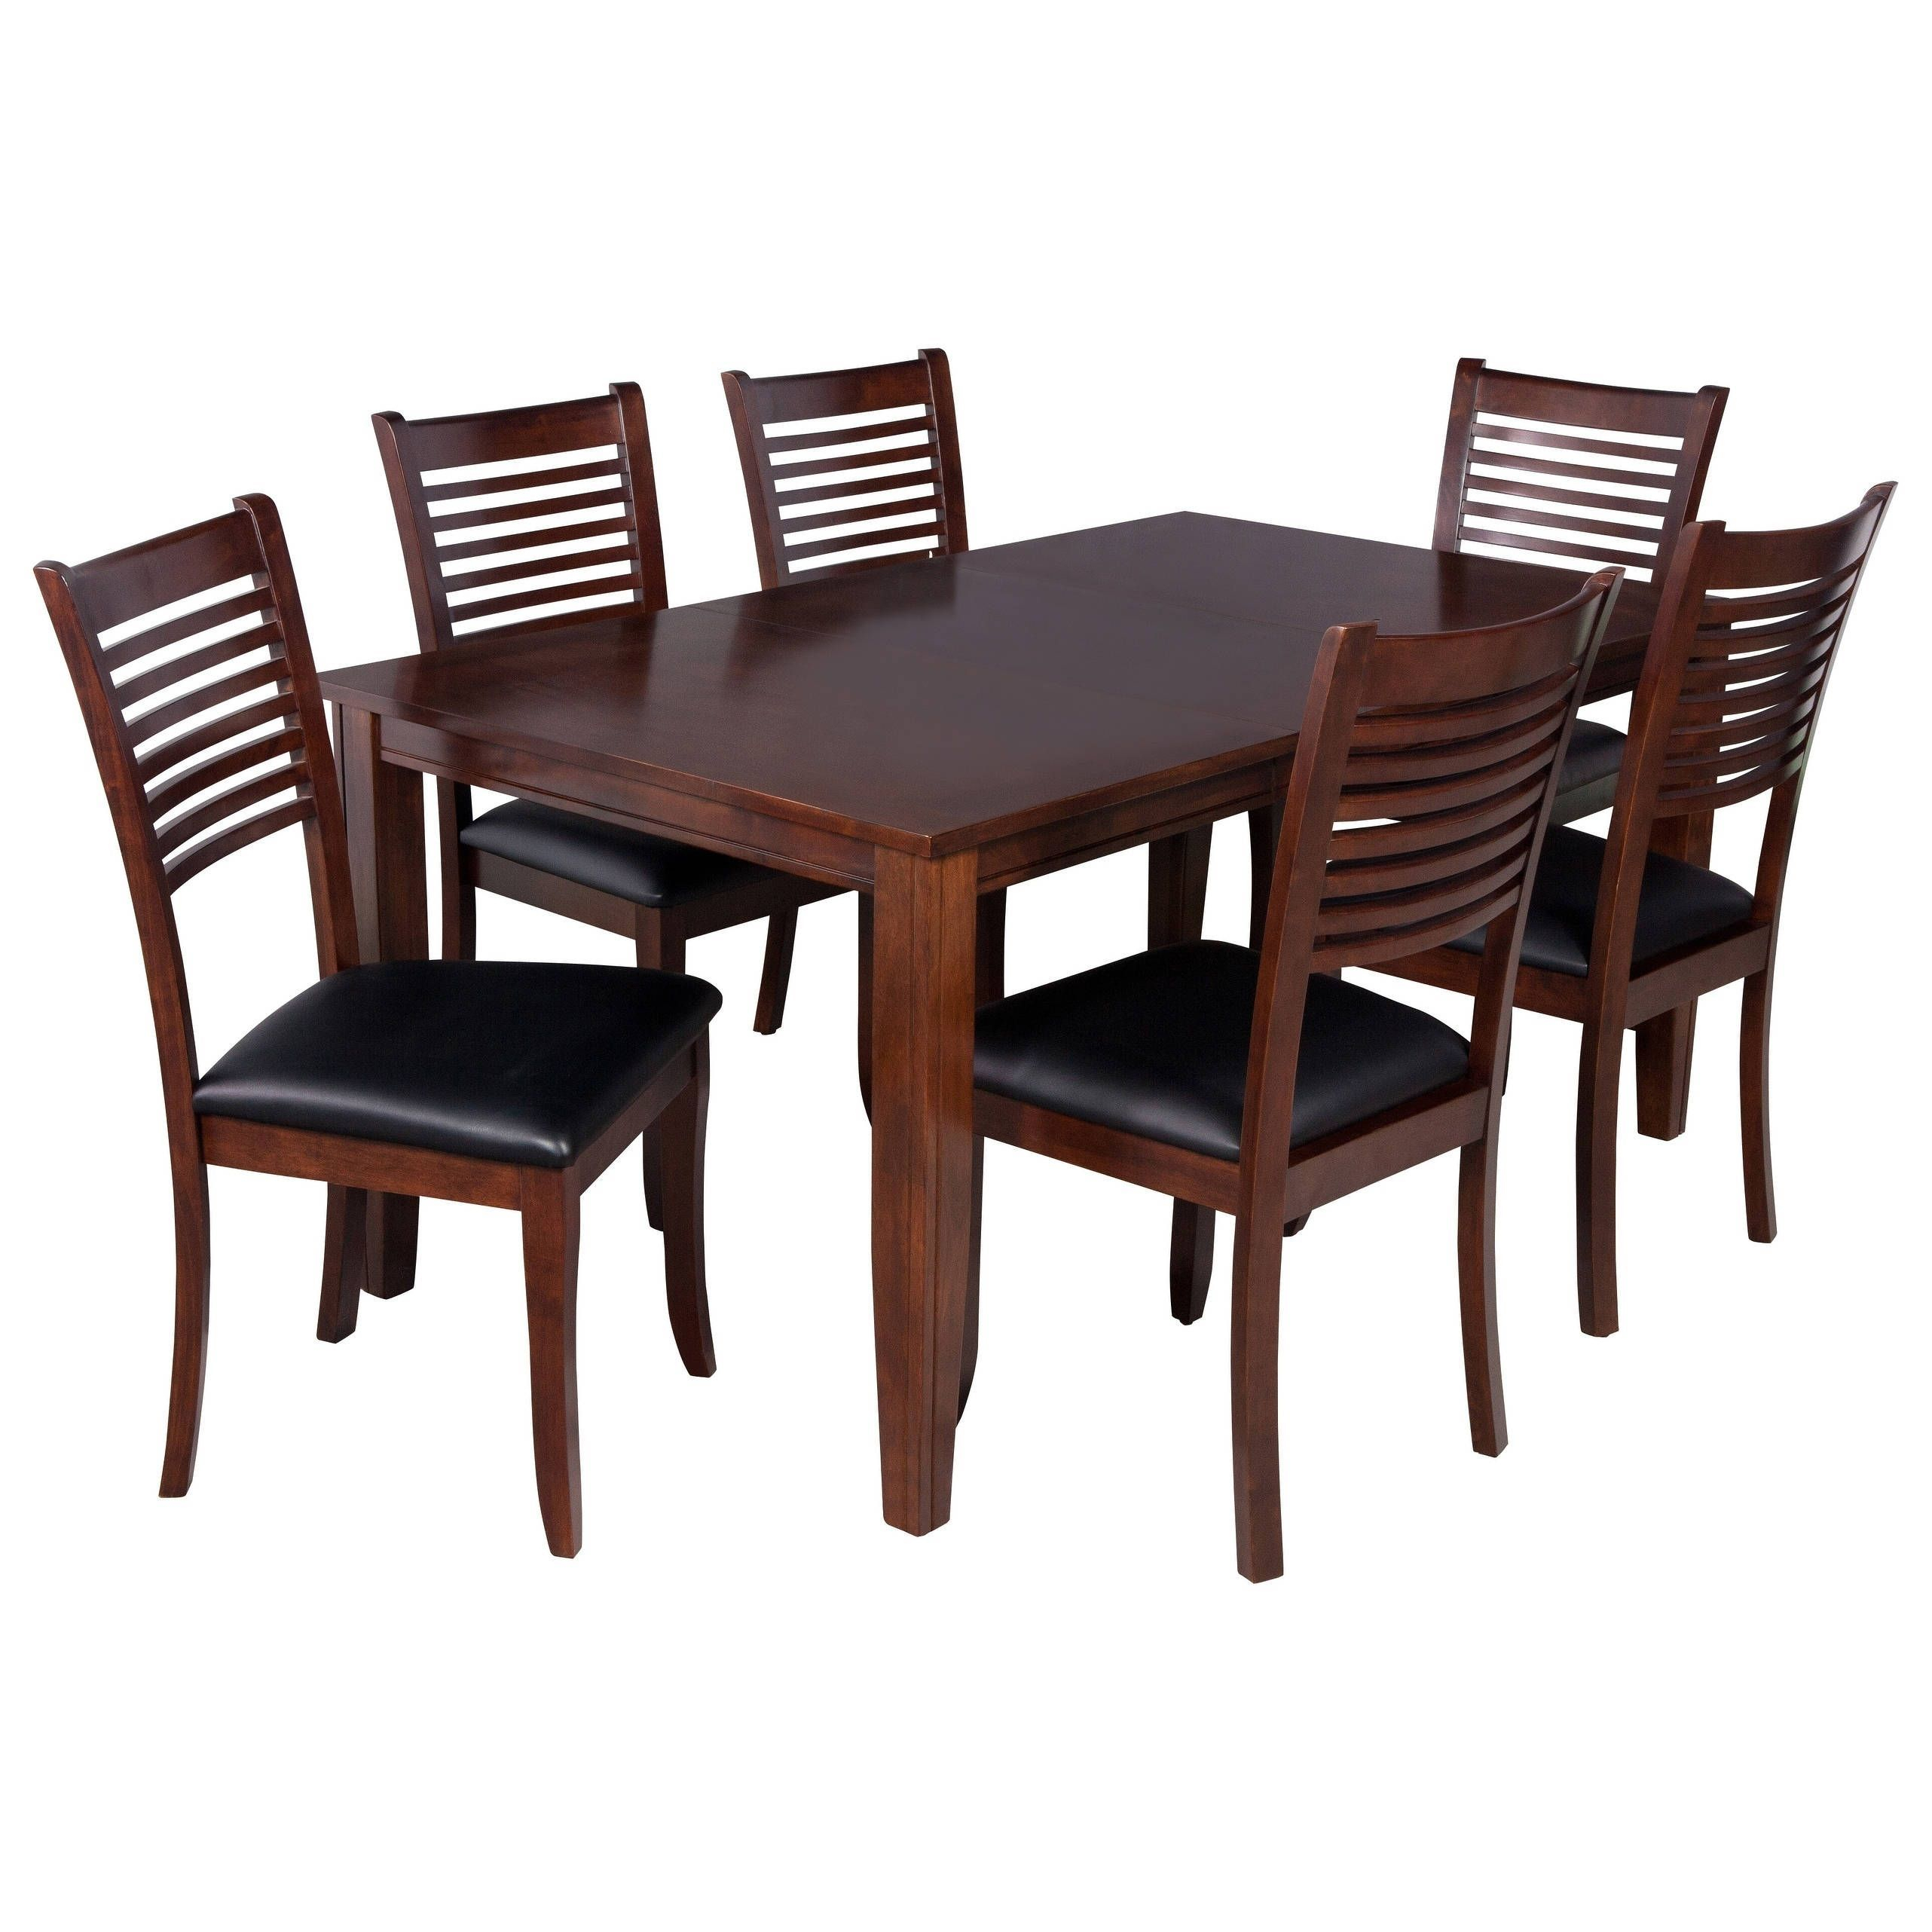 "Inspiration about Ttp Furnish 7 Piece Solid Wood Dining Set ""aden"", Modern Kitchen With Regard To Most Current Adan 5 Piece Solid Wood Dining Sets (Set Of 5) (#10 of 20)"